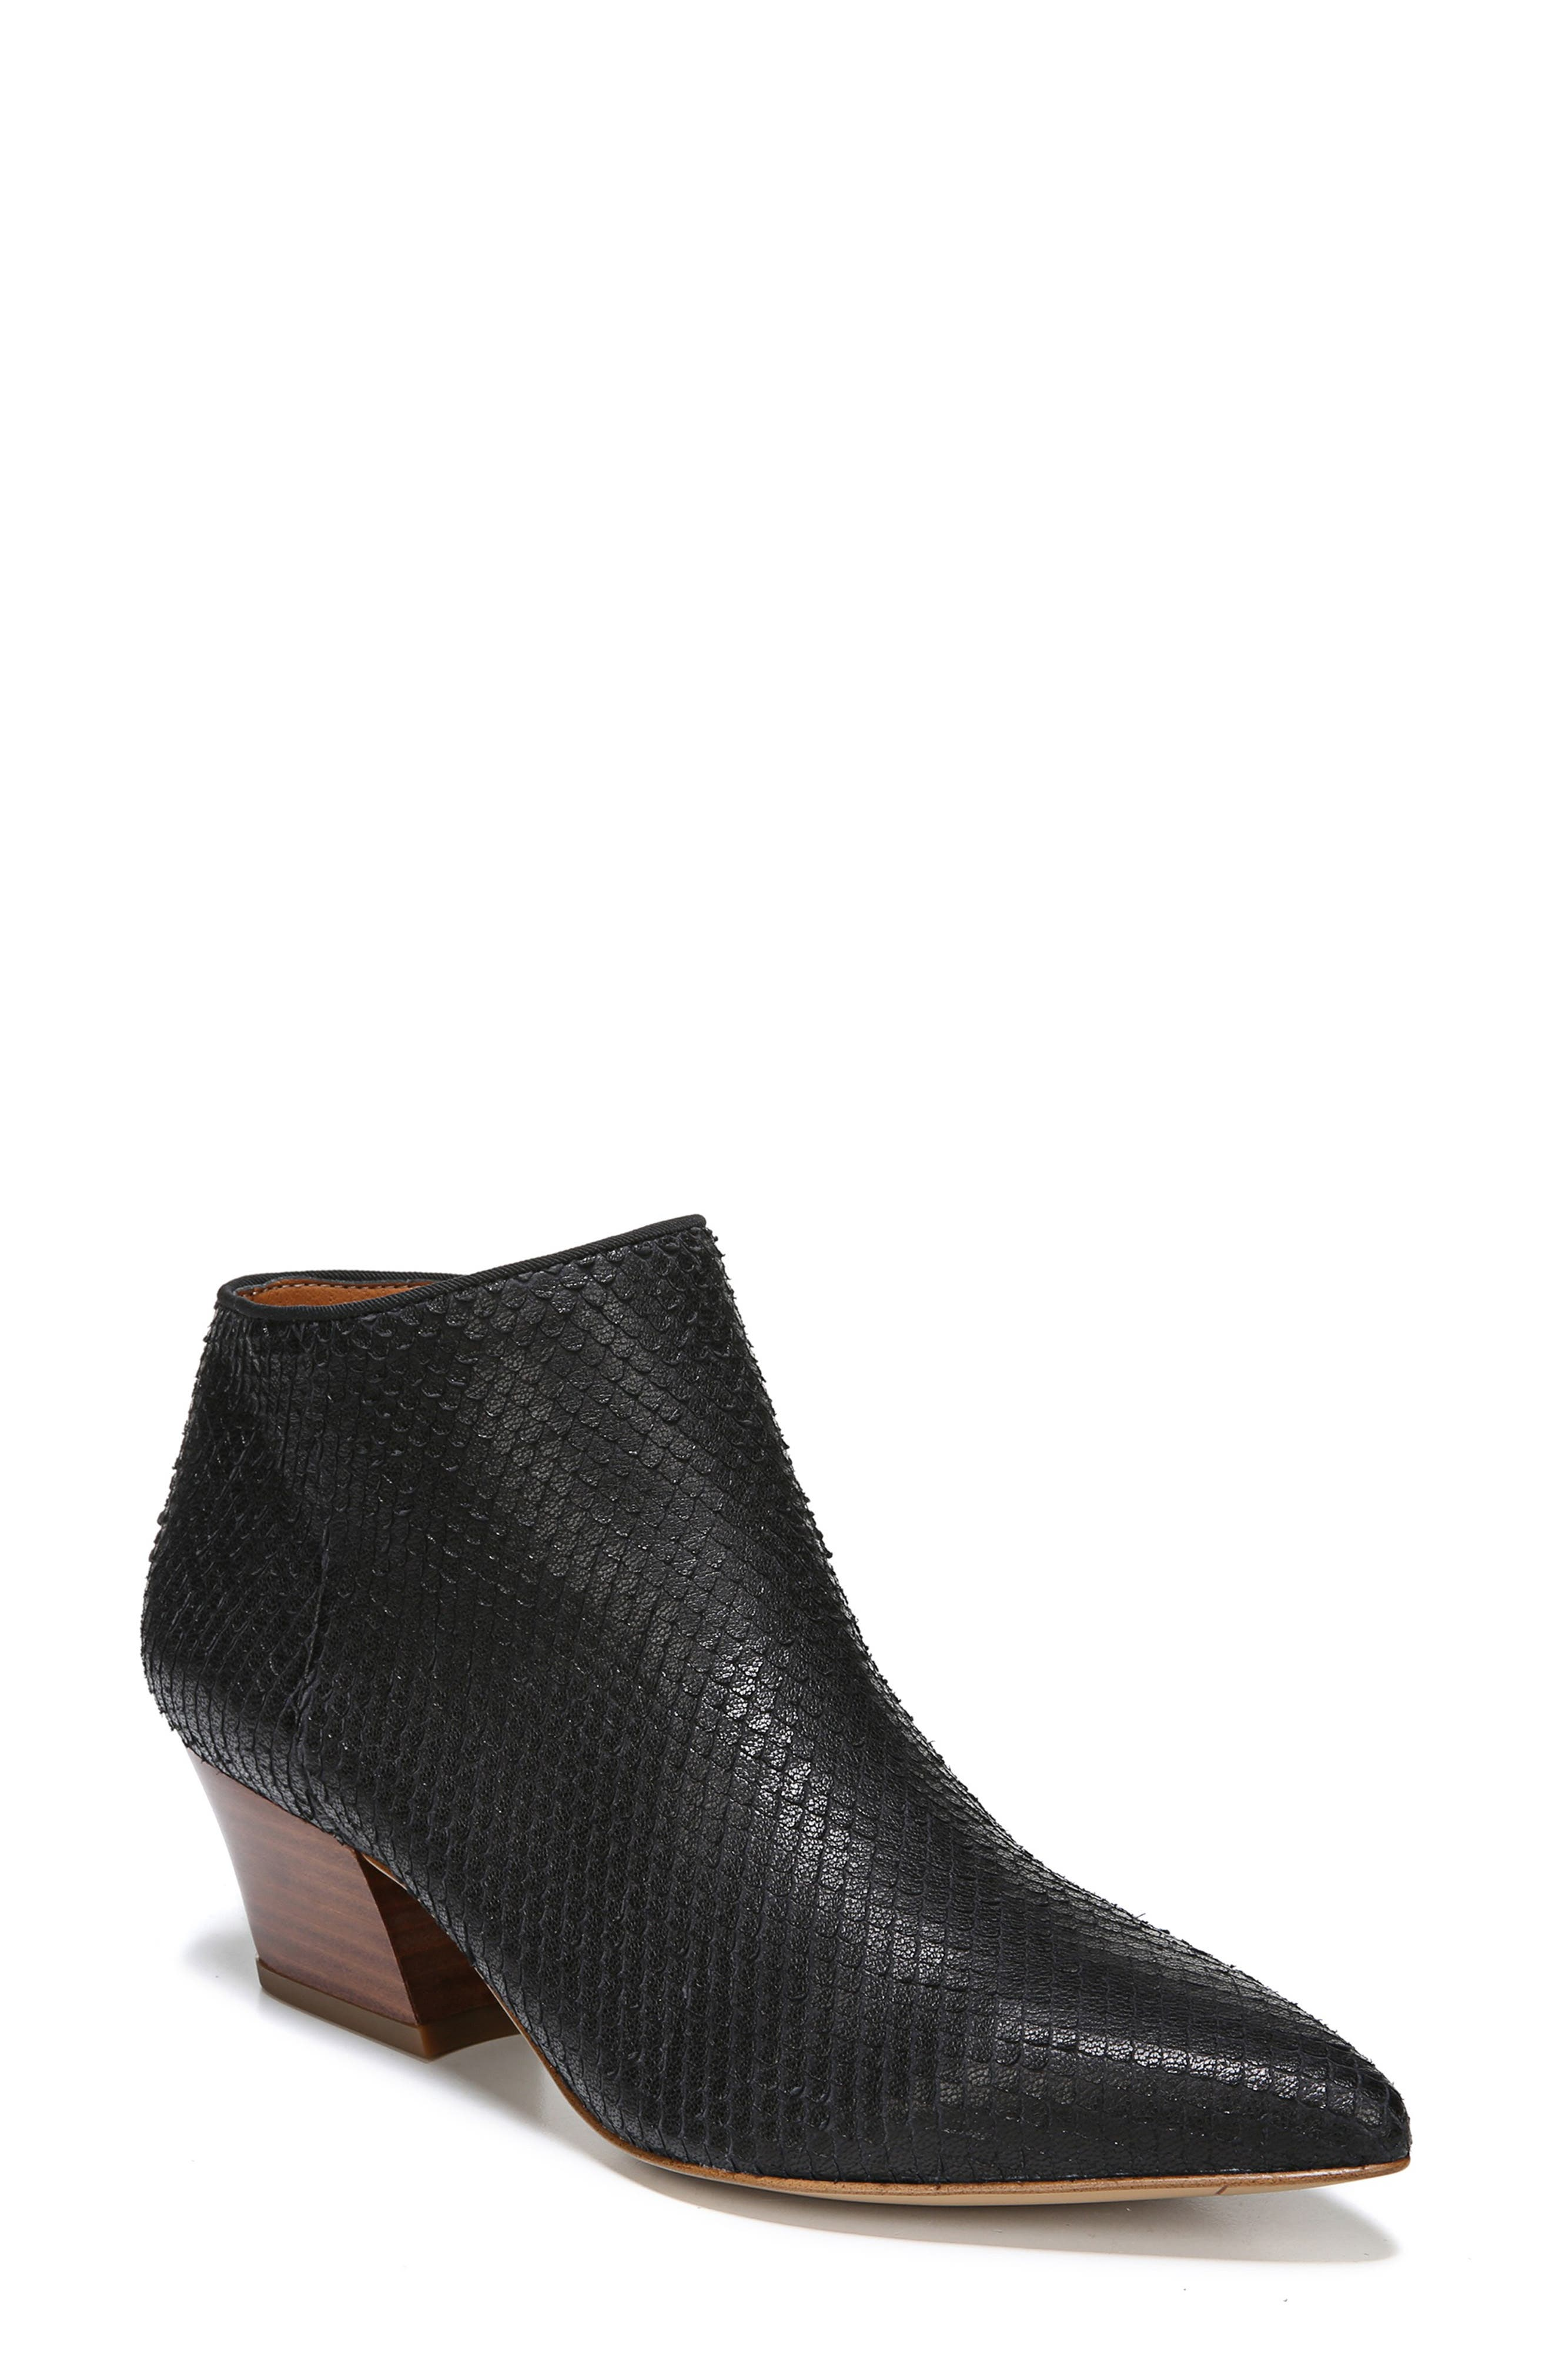 Lowe Bootie,                         Main,                         color, BLACK SNAKE PRINT LEATHER